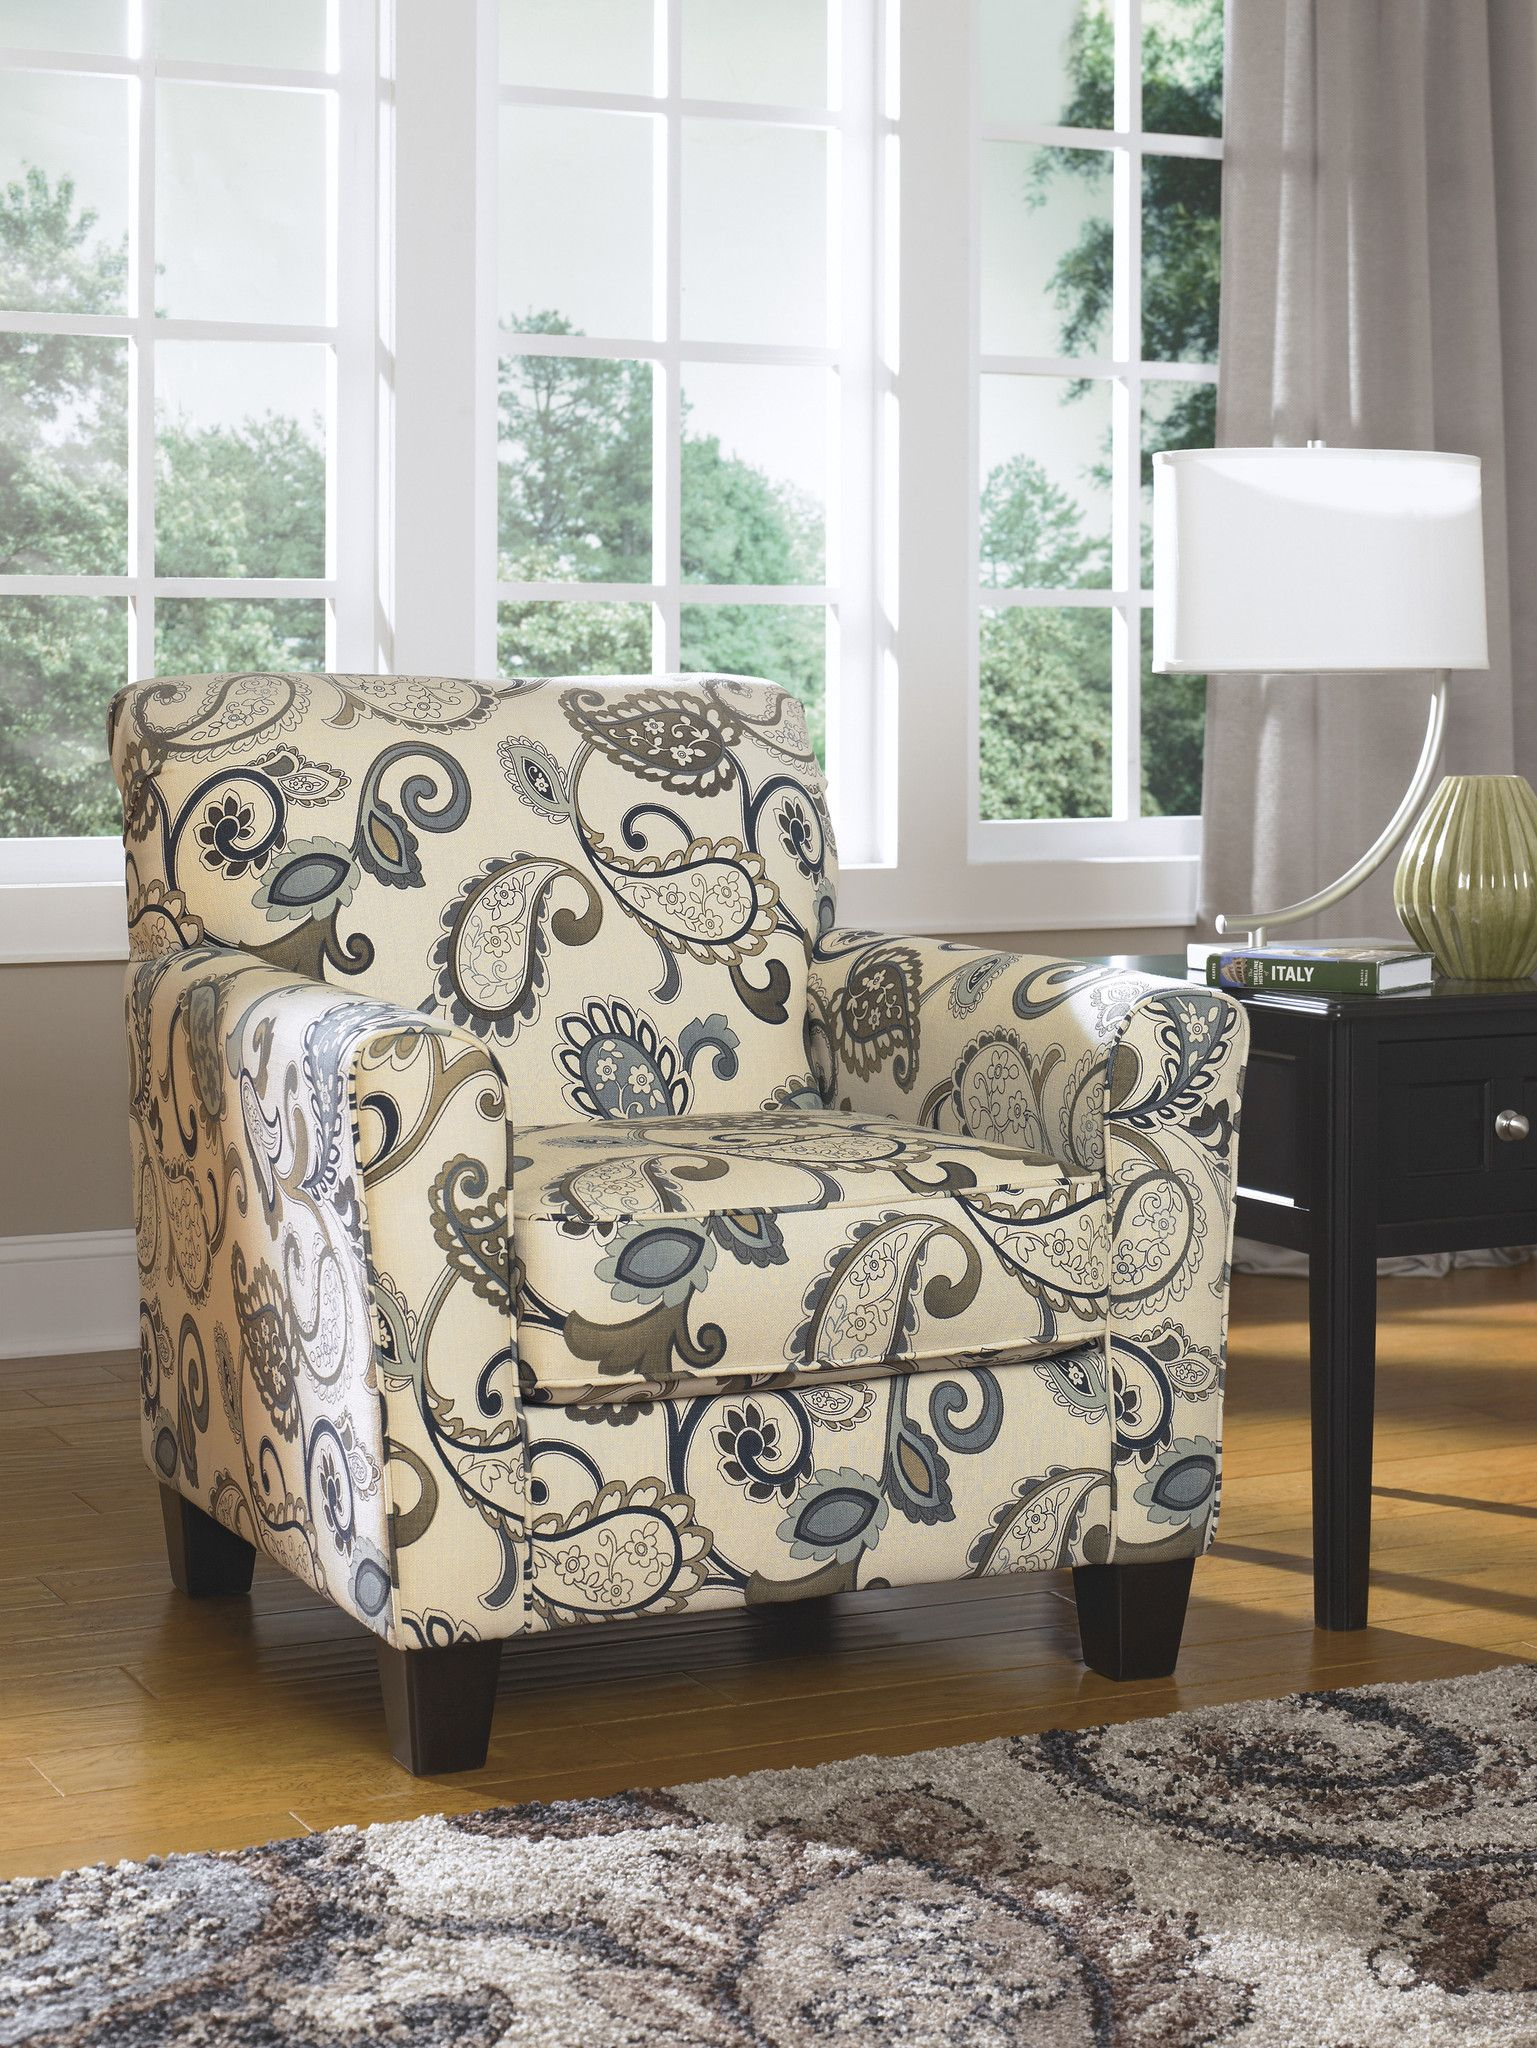 Ashley Furniture Yvette Accent Chair 7790021 Furniture Living